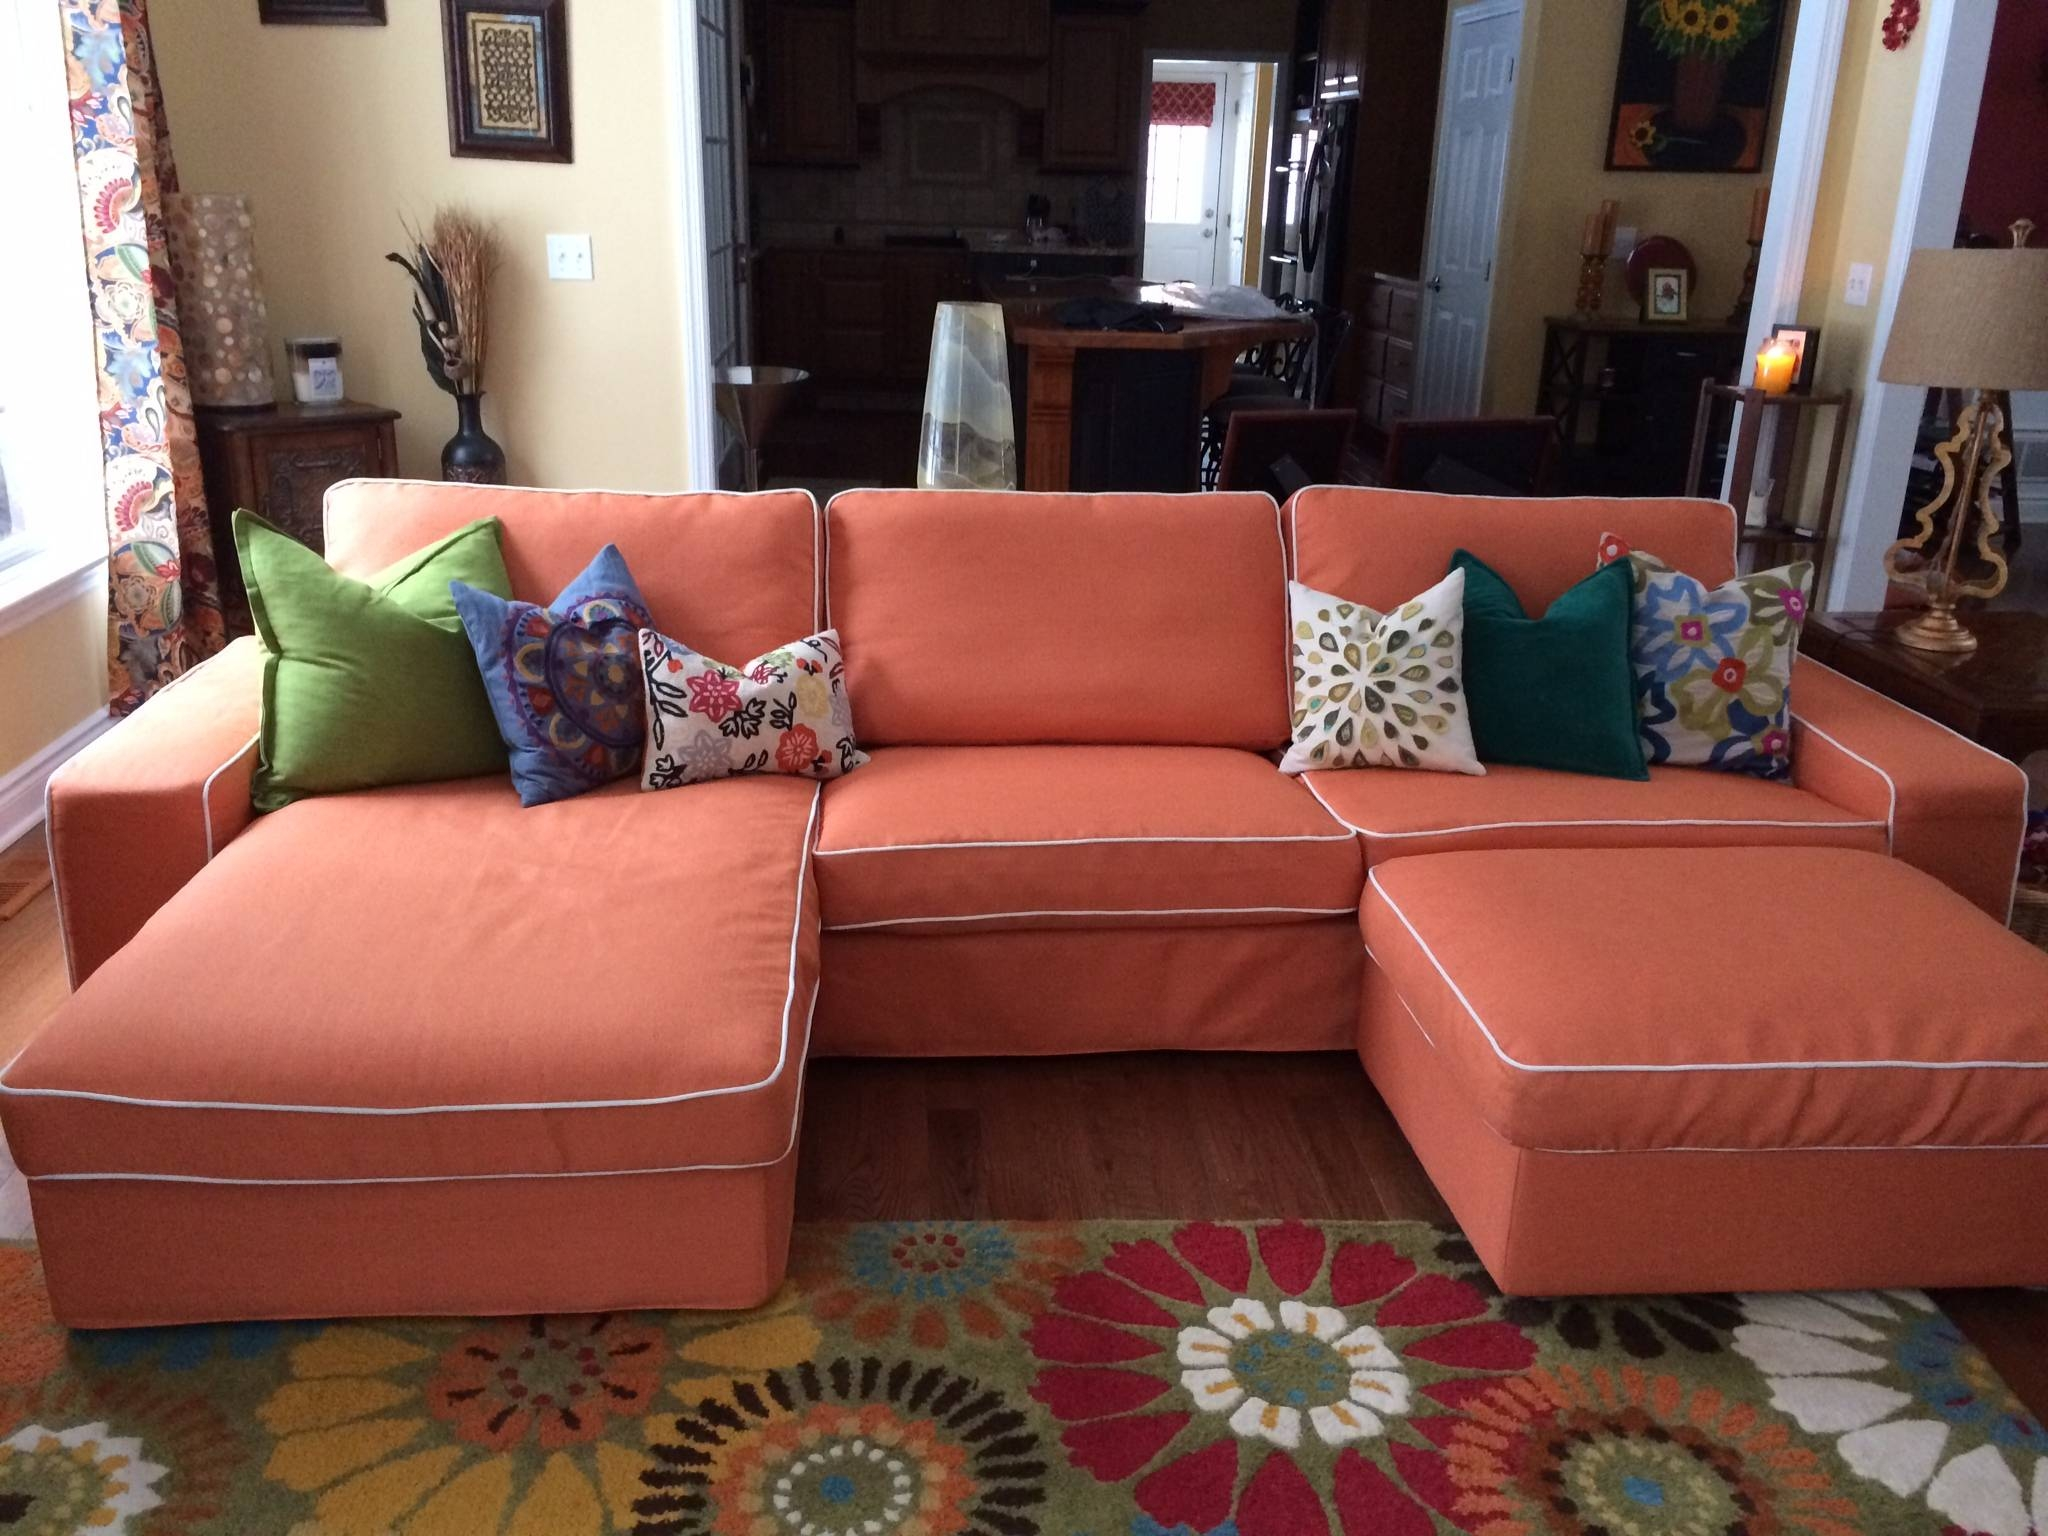 Ikea Kivik Sofa Series Review - Comfort Works Blog & Design with Lillberg Sofa Covers (Image 12 of 30)